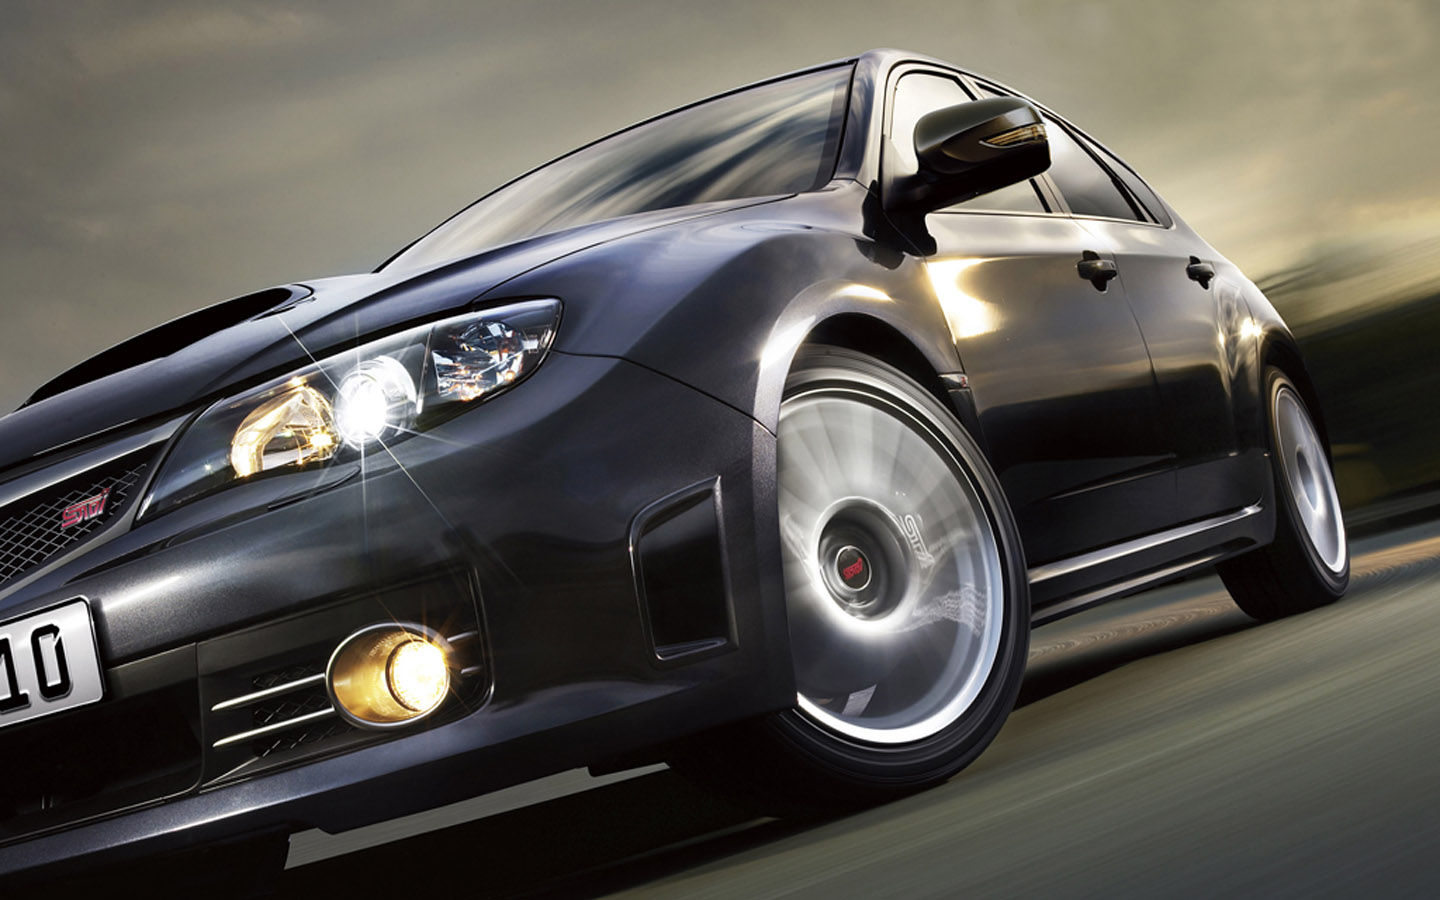 On Road Subaru Impreza Wallpaper Background